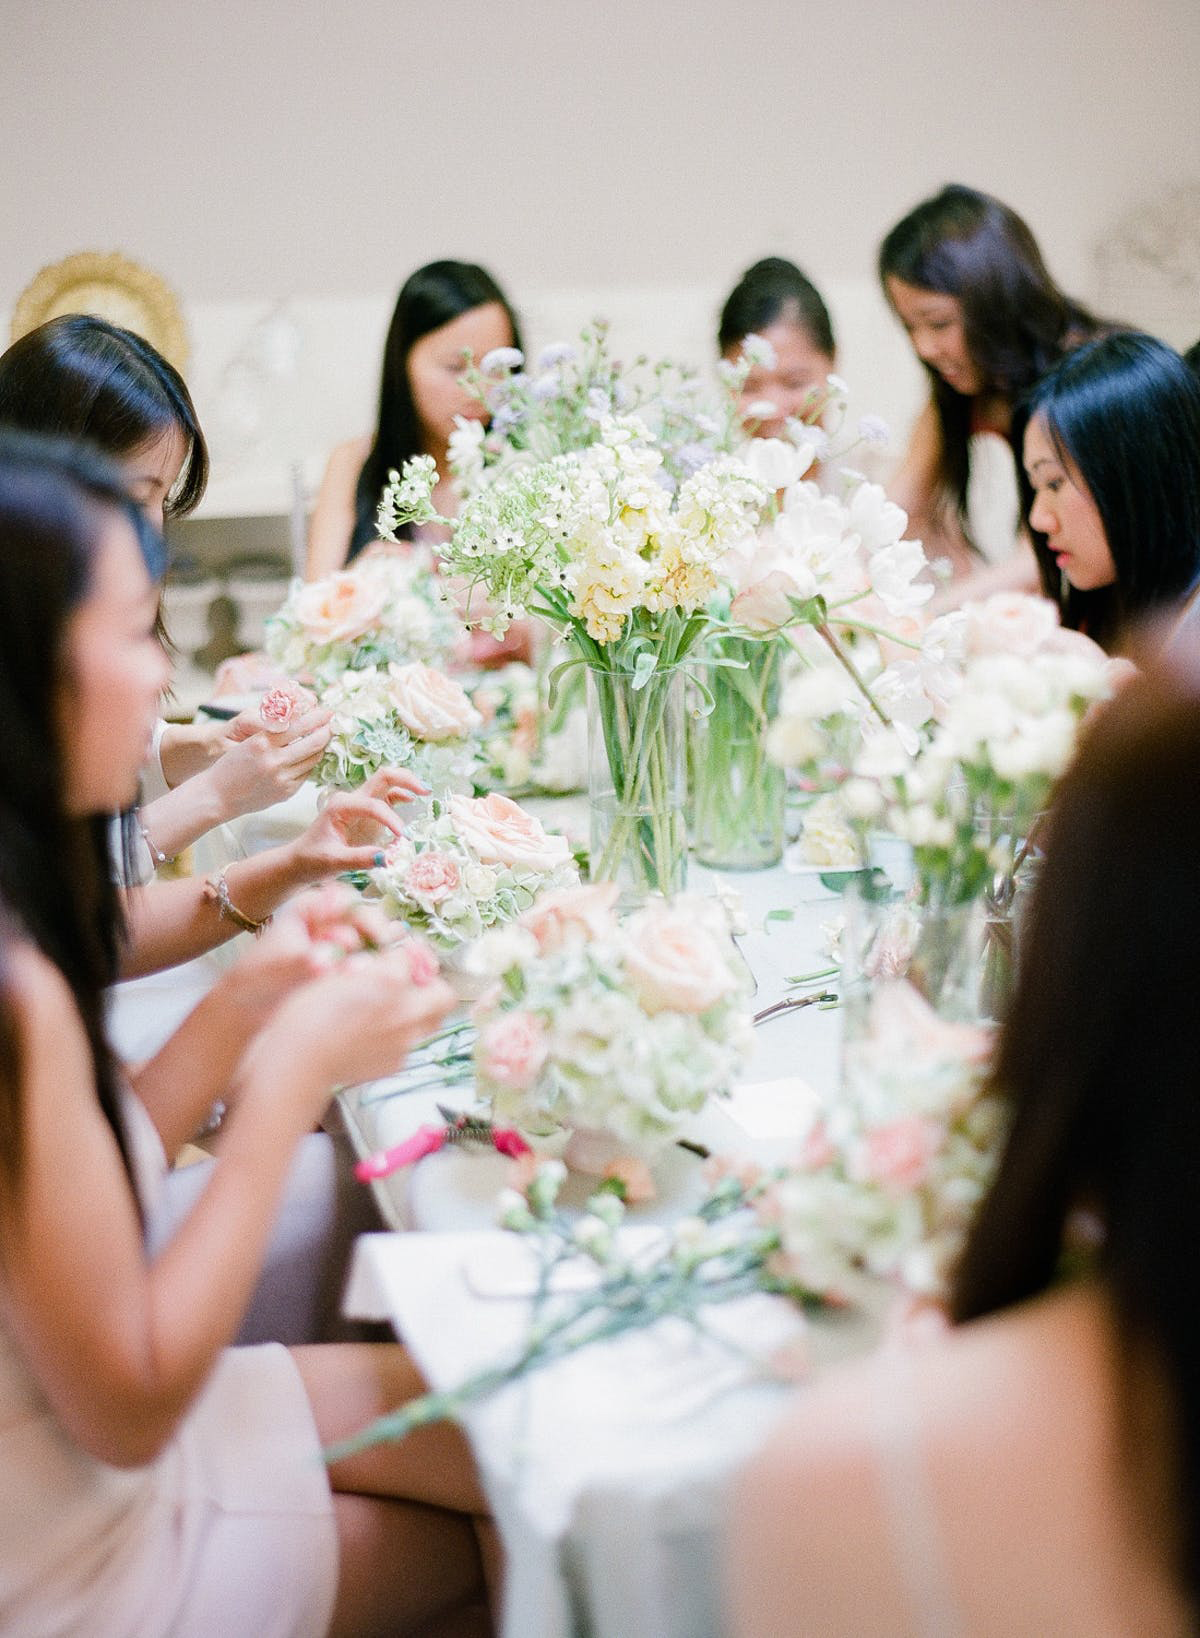 Take a Flower Arranging Class